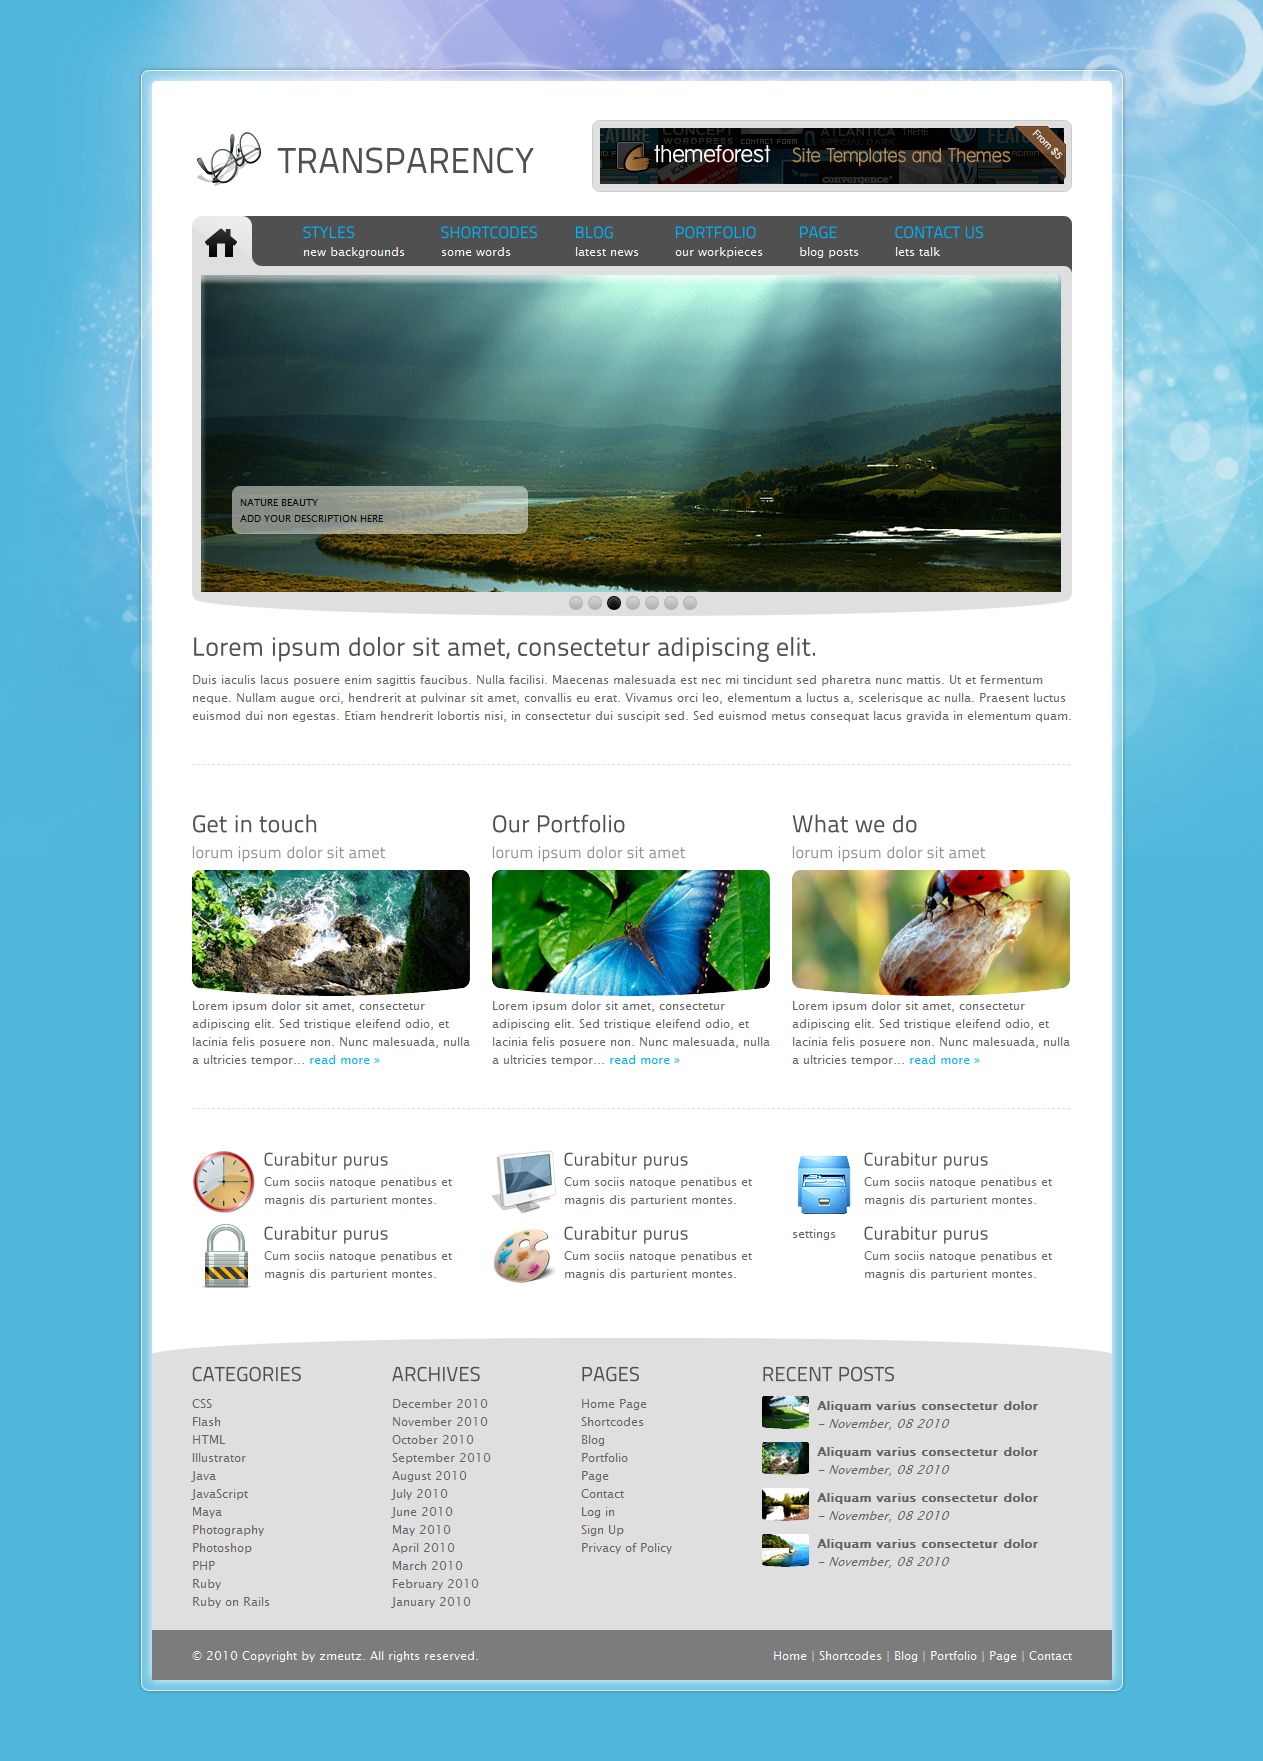 Tranzparency - Wordpress - Home page